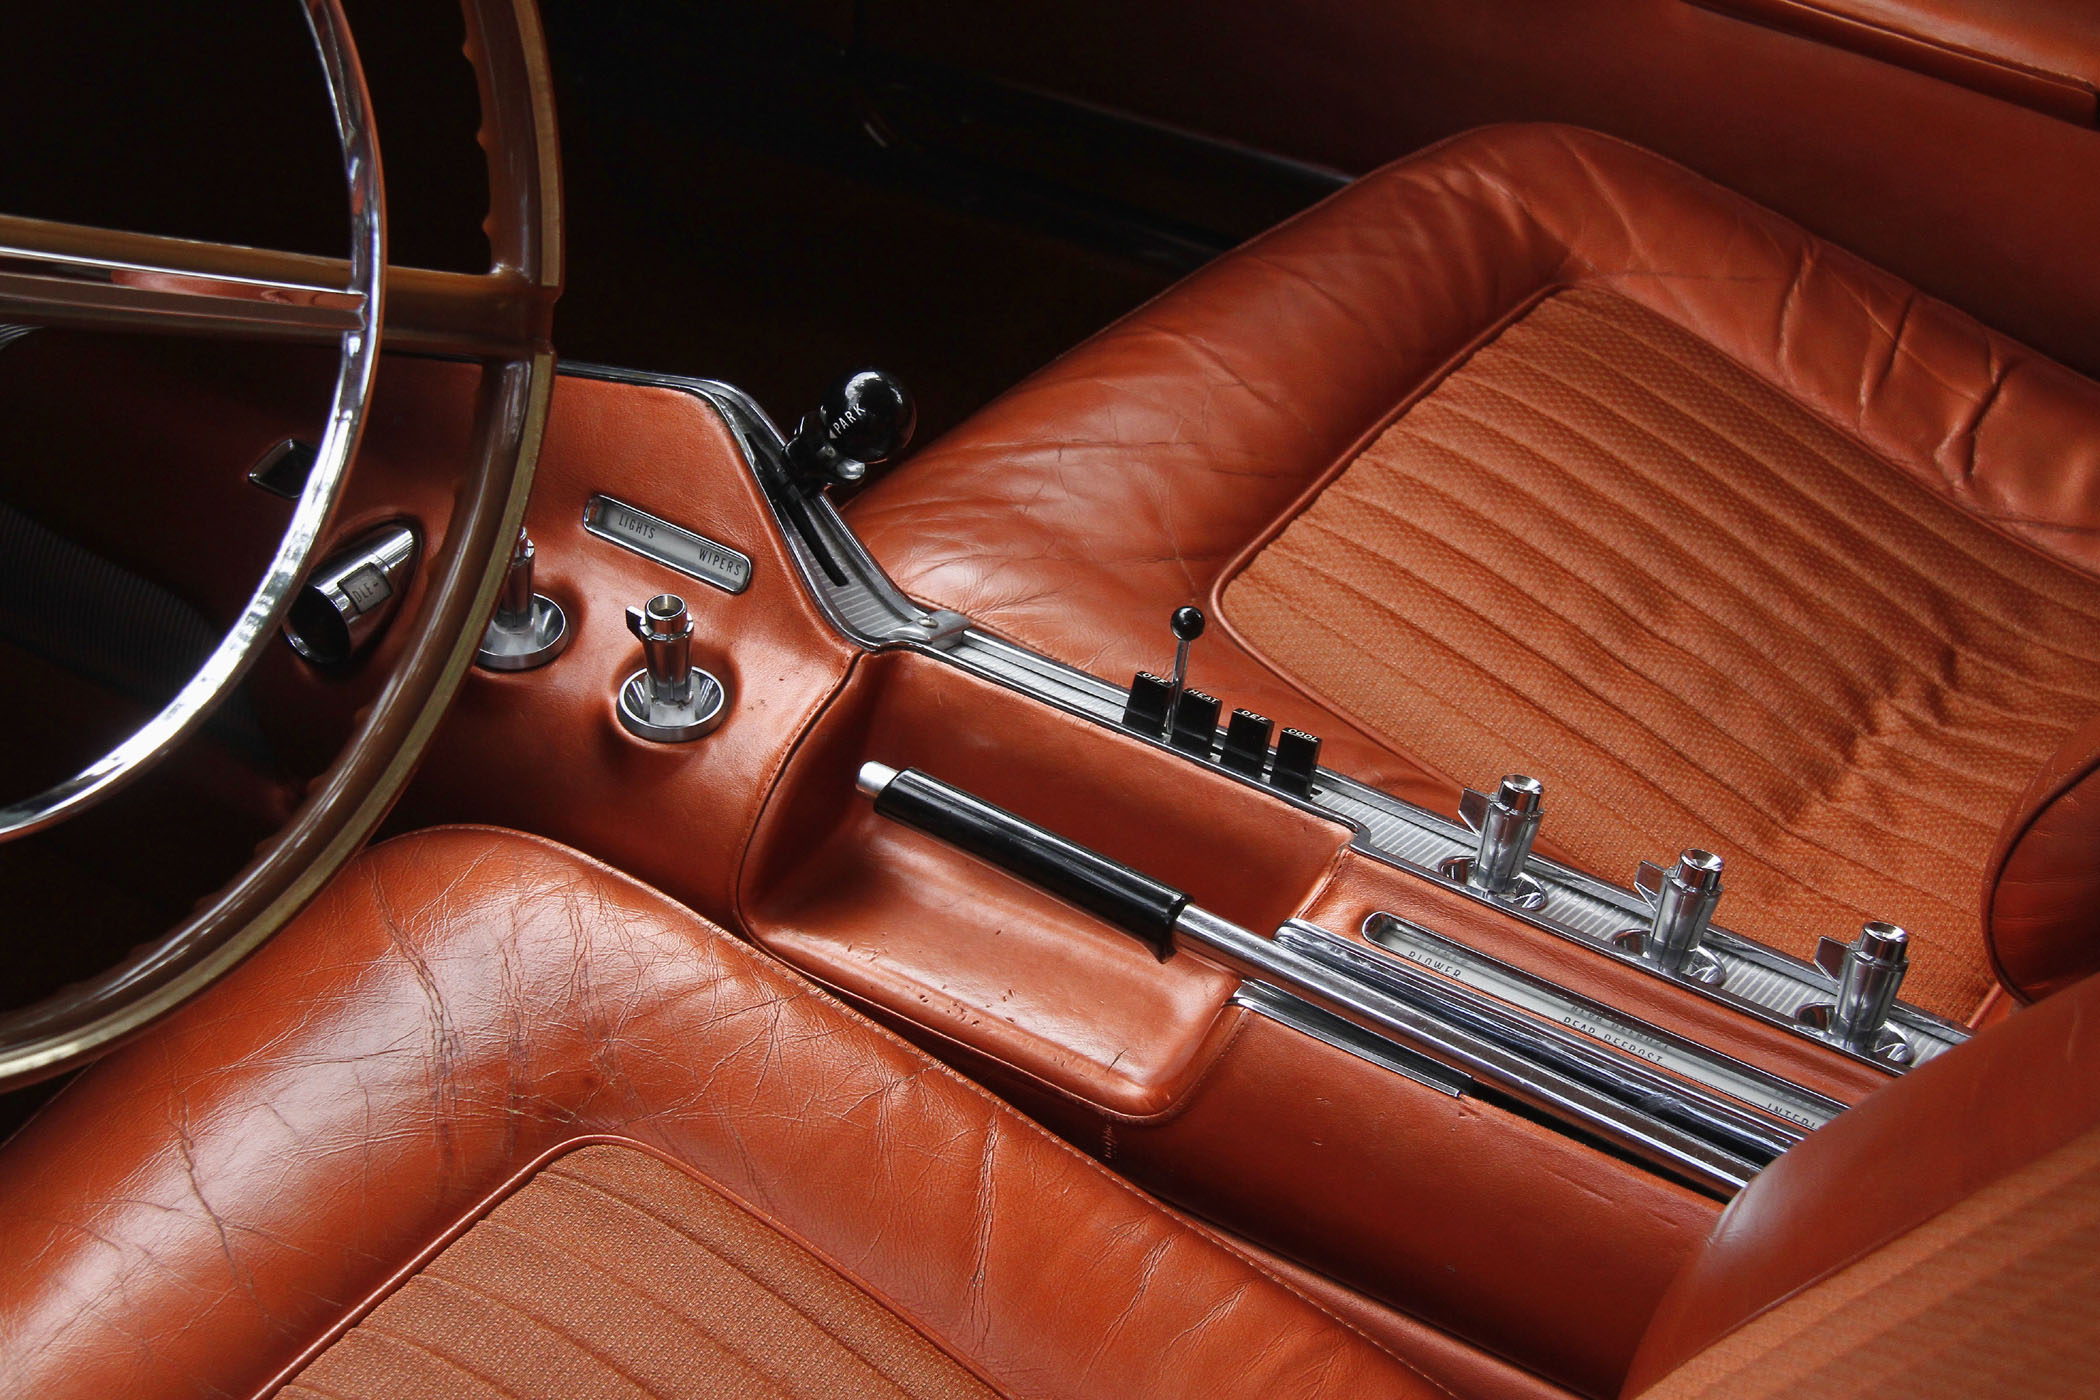 CHRYSLER_TURBINE_INTERIOR_WITH_SPECIAL_CONTROLS